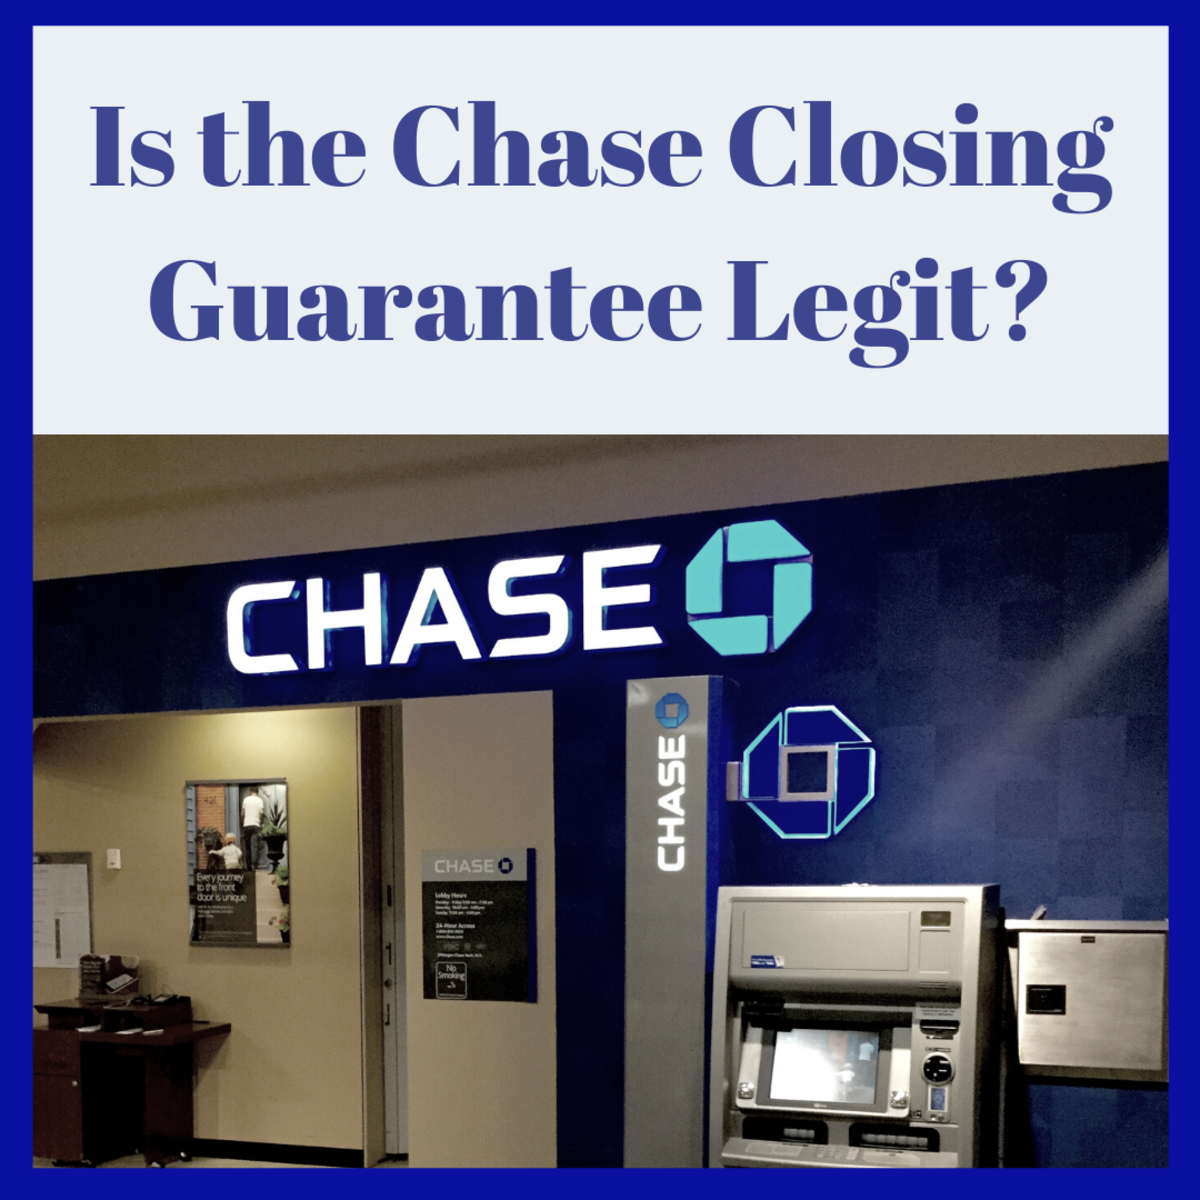 Is the Chase Closing Guarantee legit?